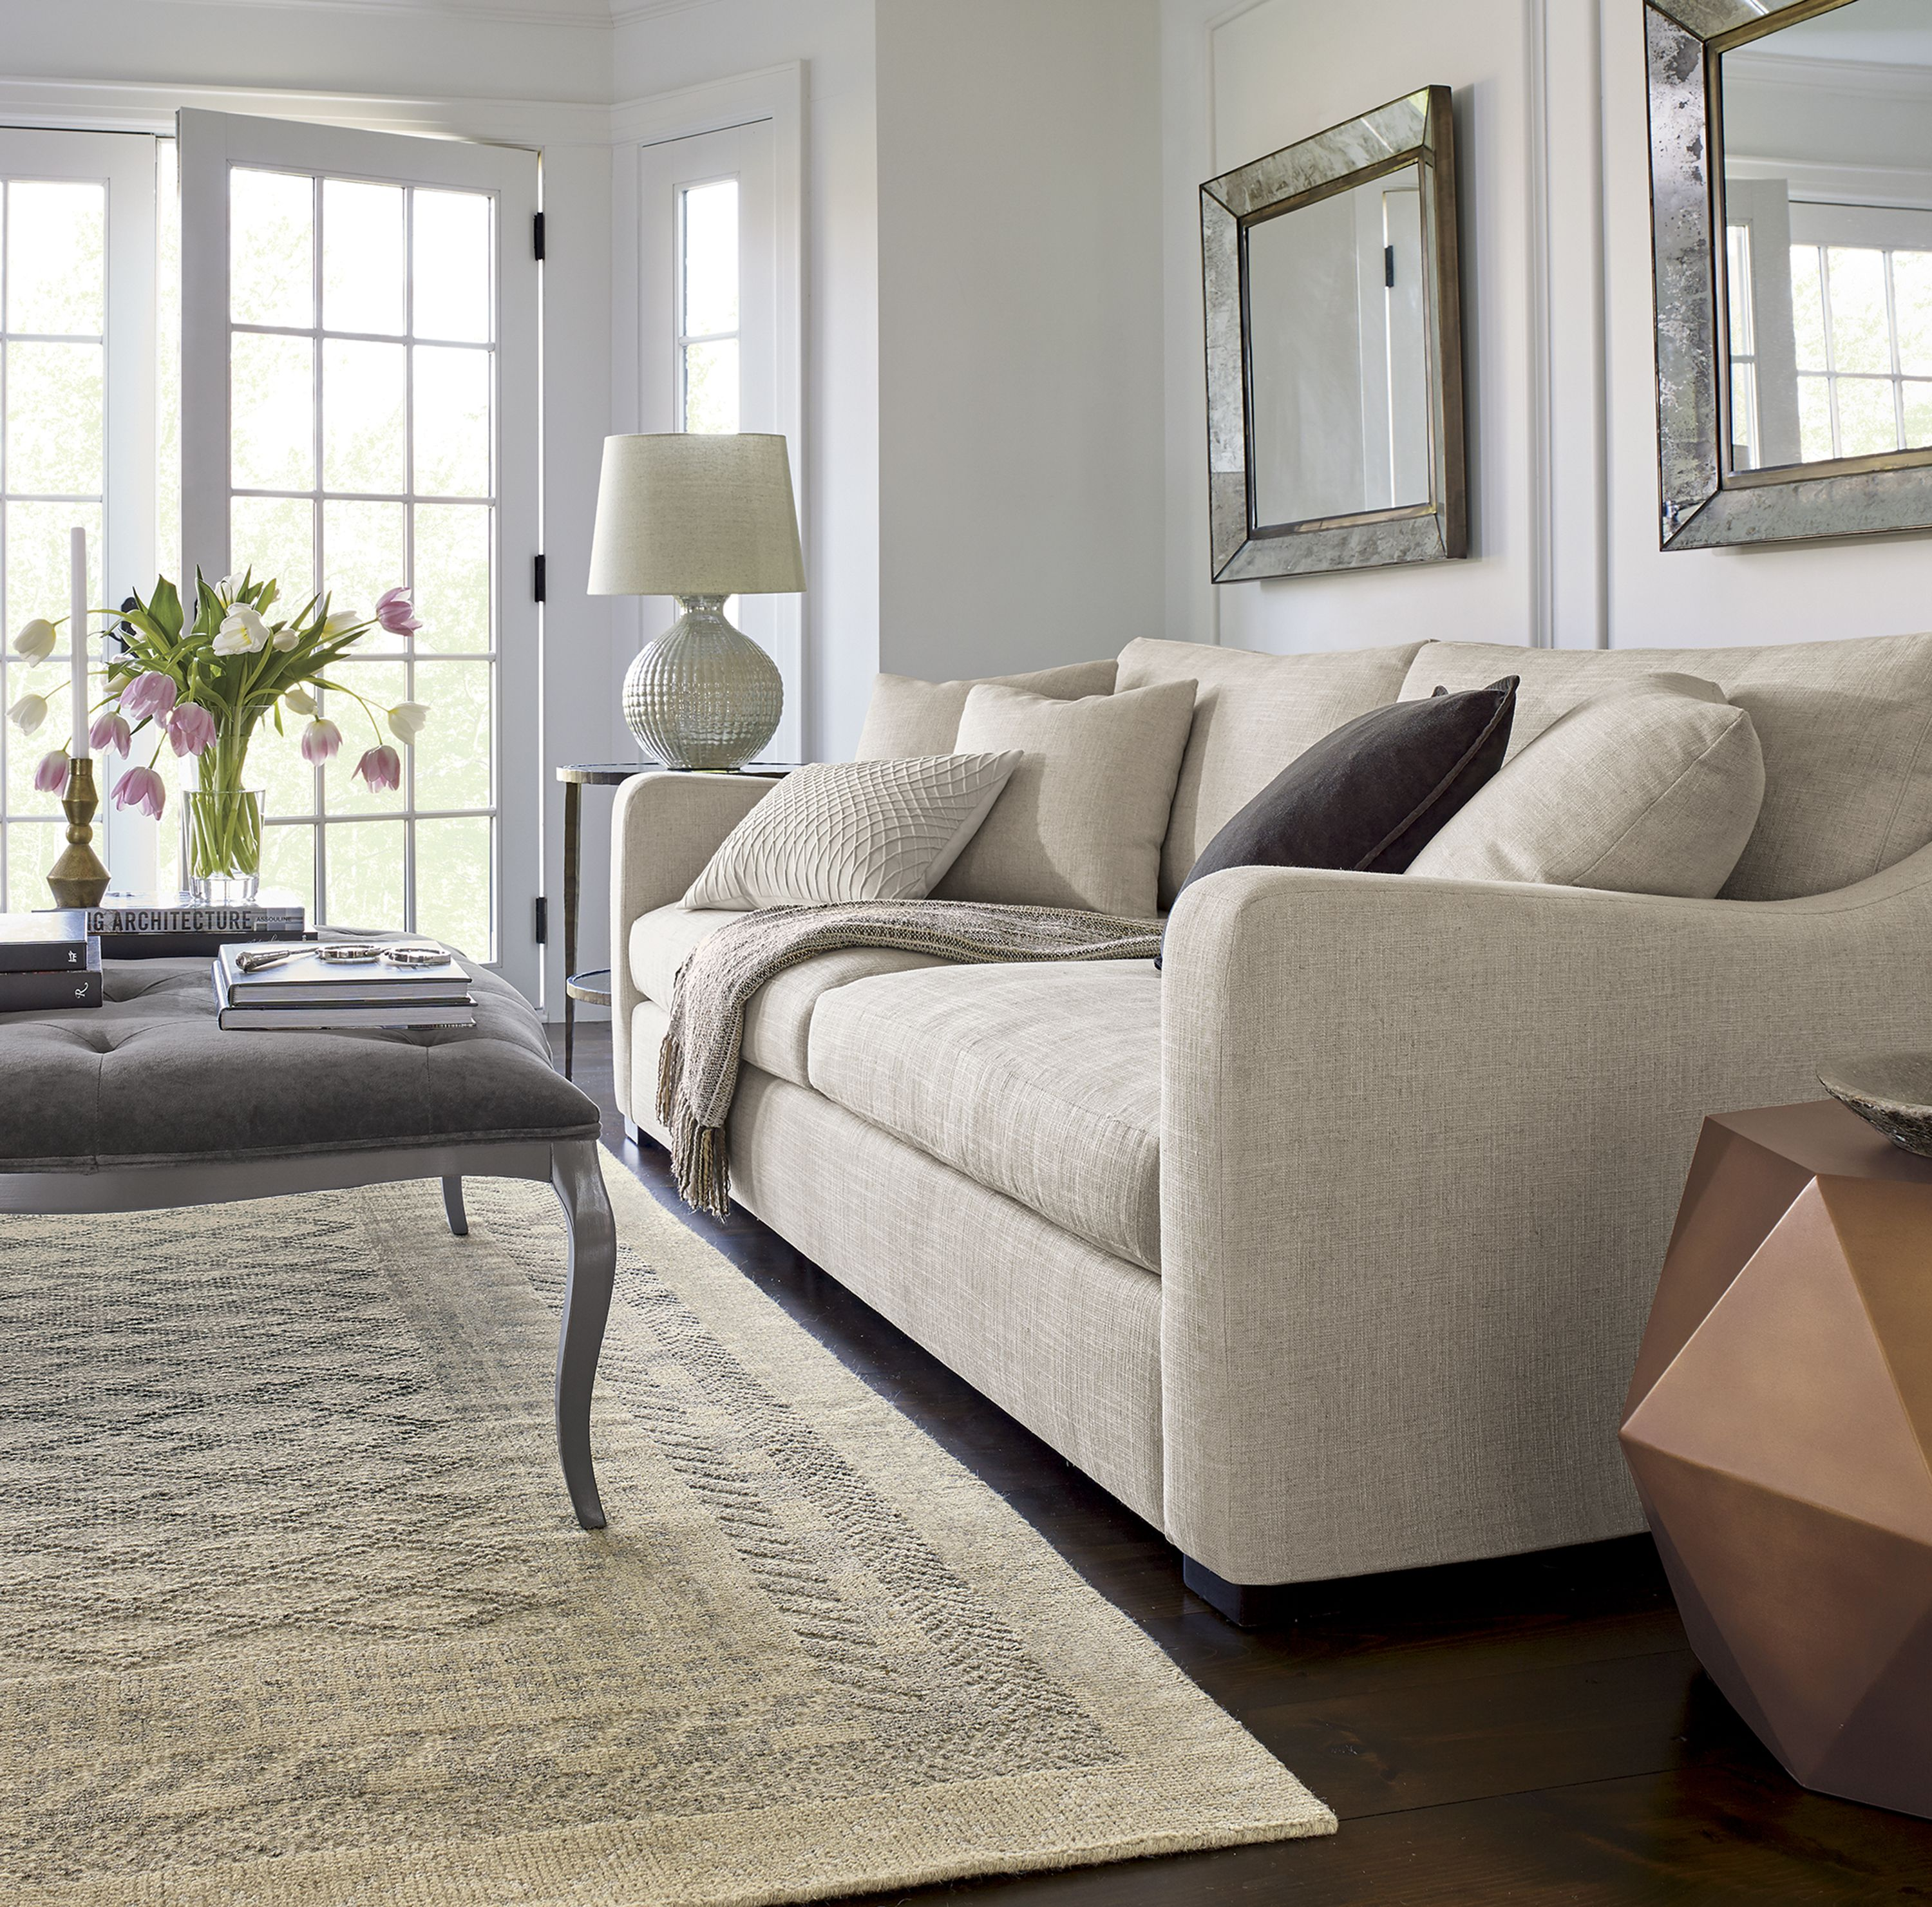 Crate And Barrel Verano Sofa Large Yellow Cushions The Furniture Collection Sits Deep Luxurious